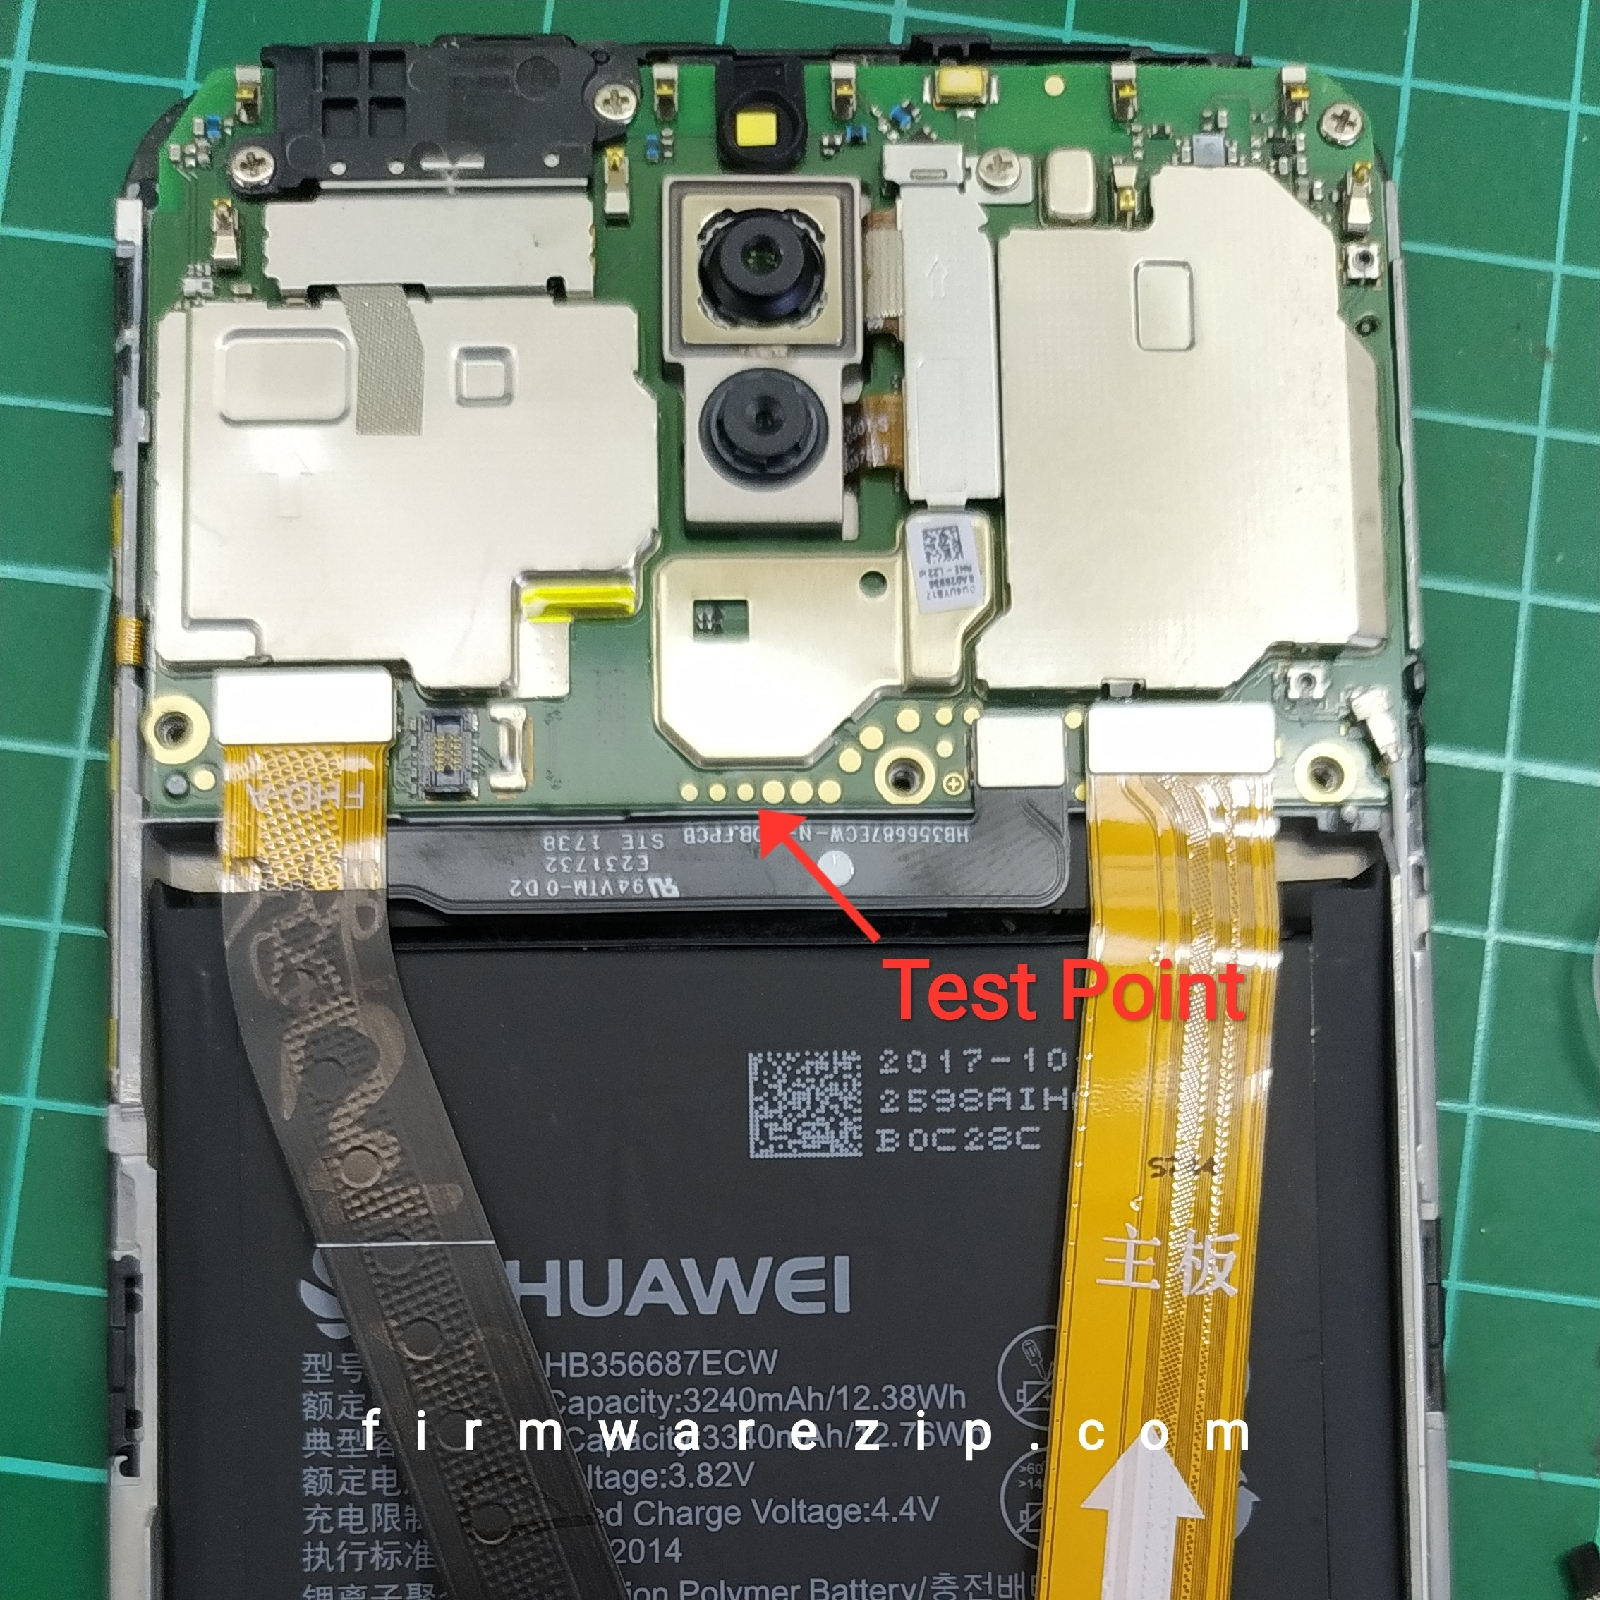 huawei rne-l22 test point